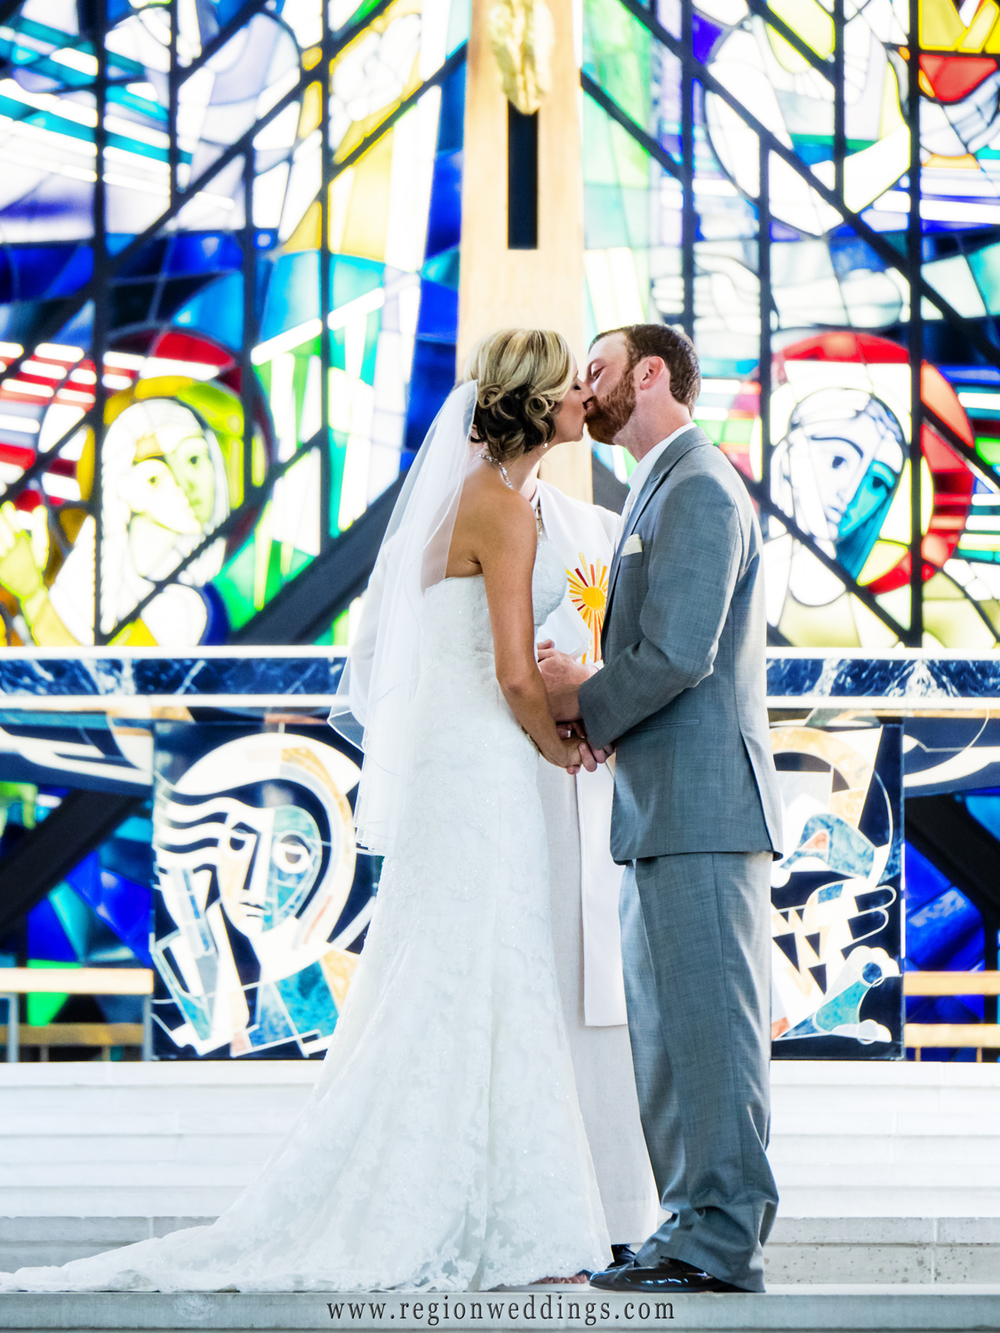 First kiss for the bride and groom at Valparaiso University.